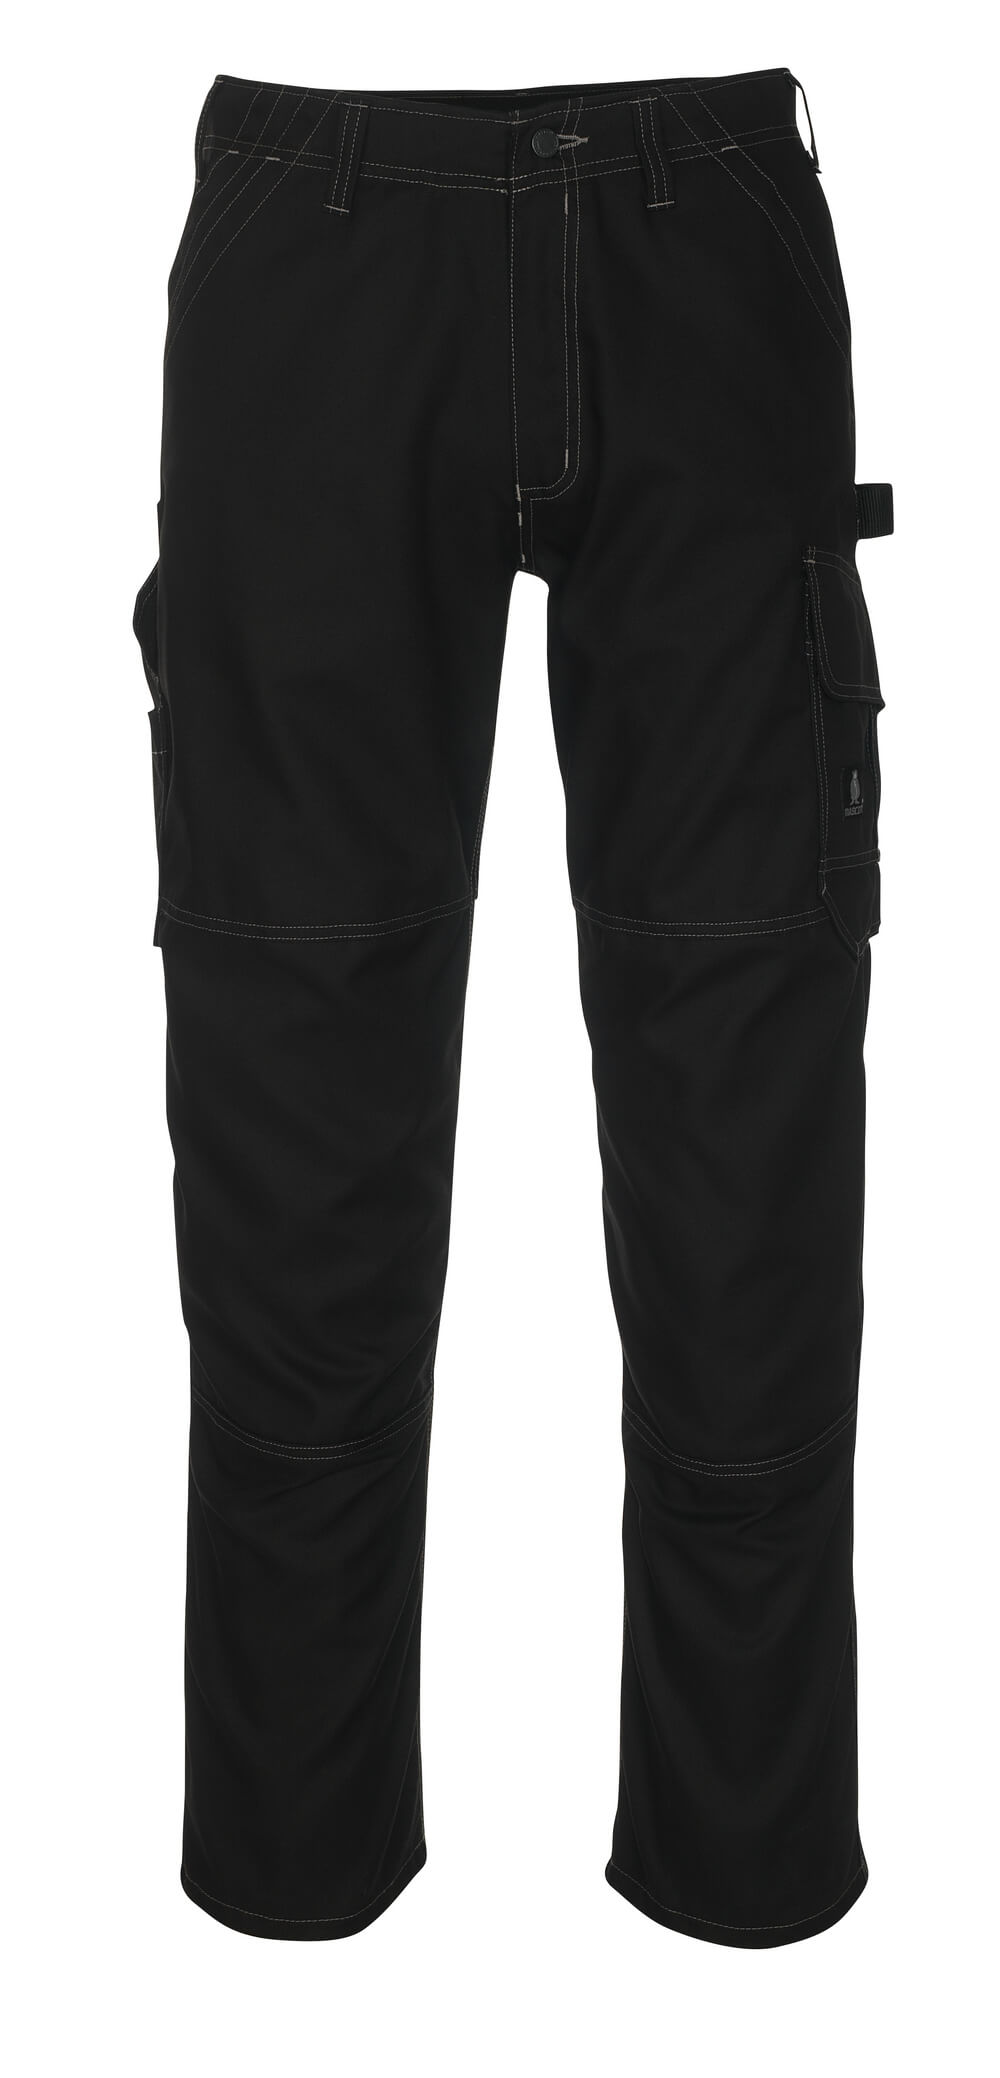 08679-154-09 Pants with thigh pockets - black